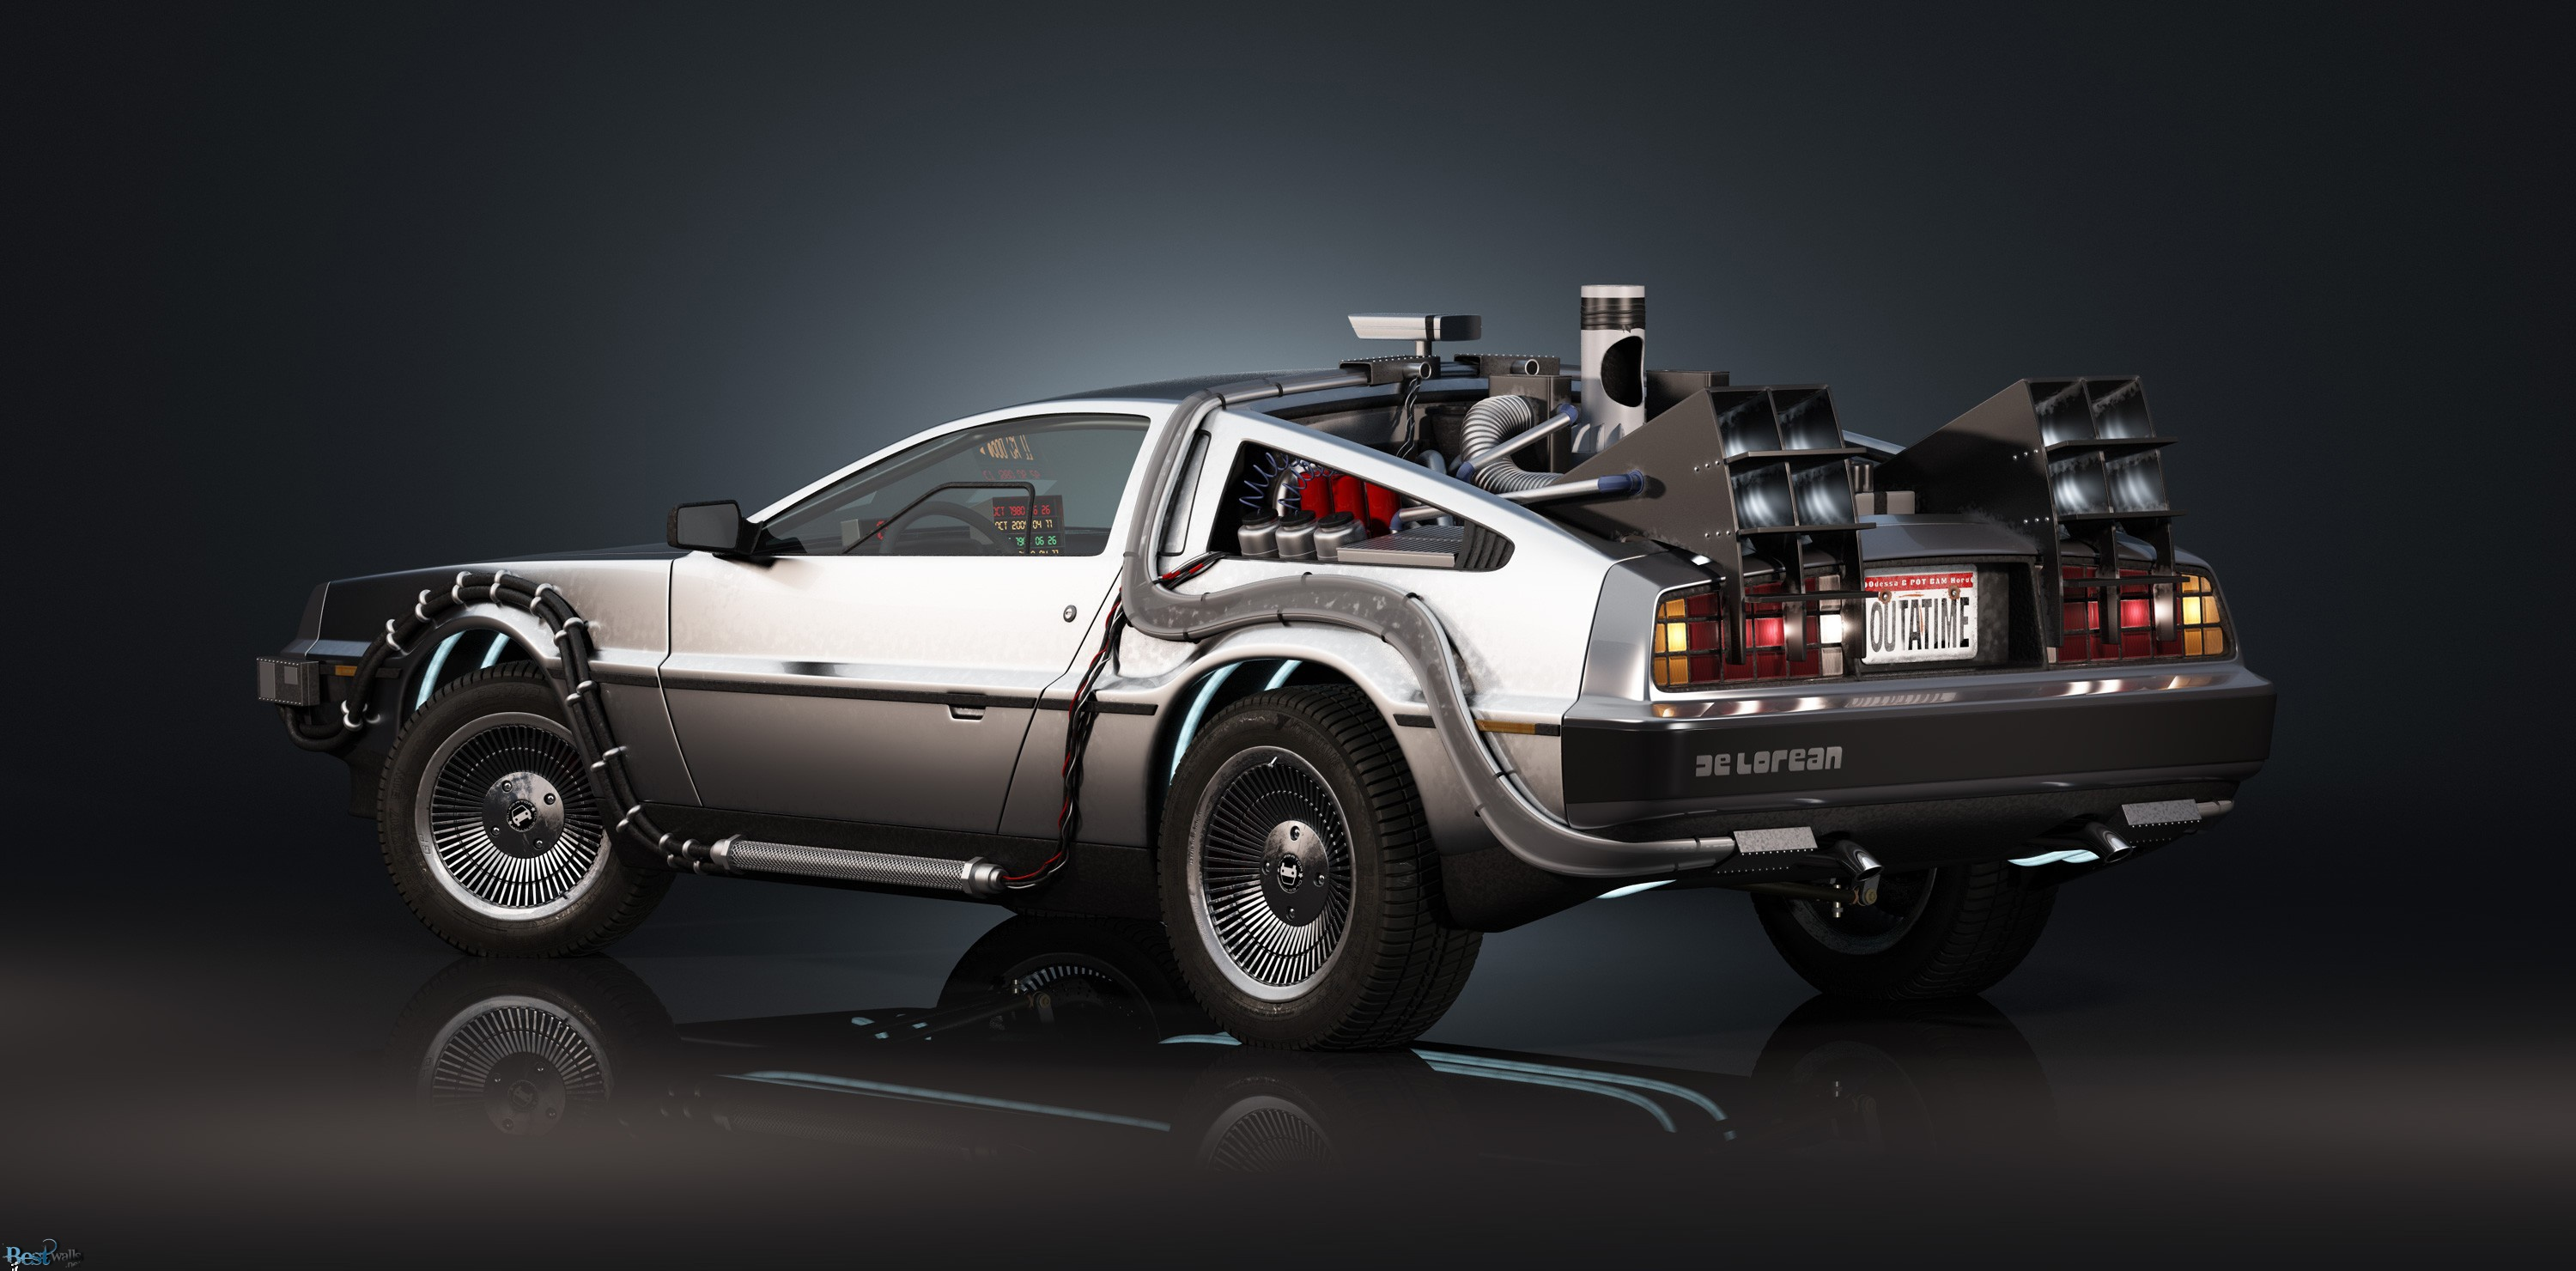 Delorean #13